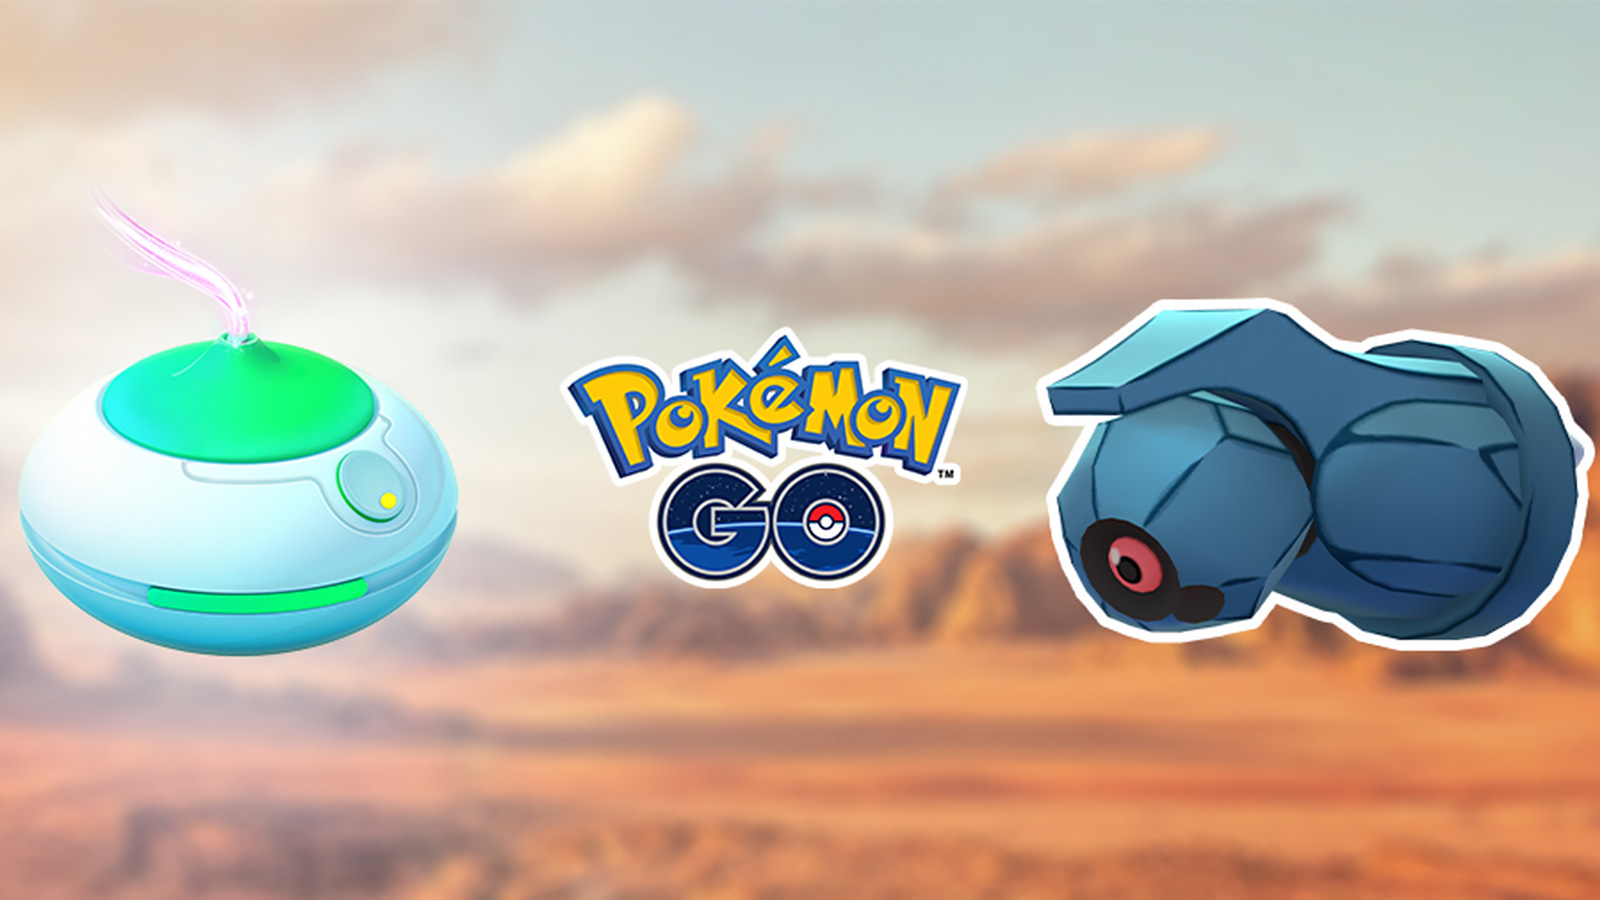 Screenshot of Pokemon Go Beldum & Incense promotion.